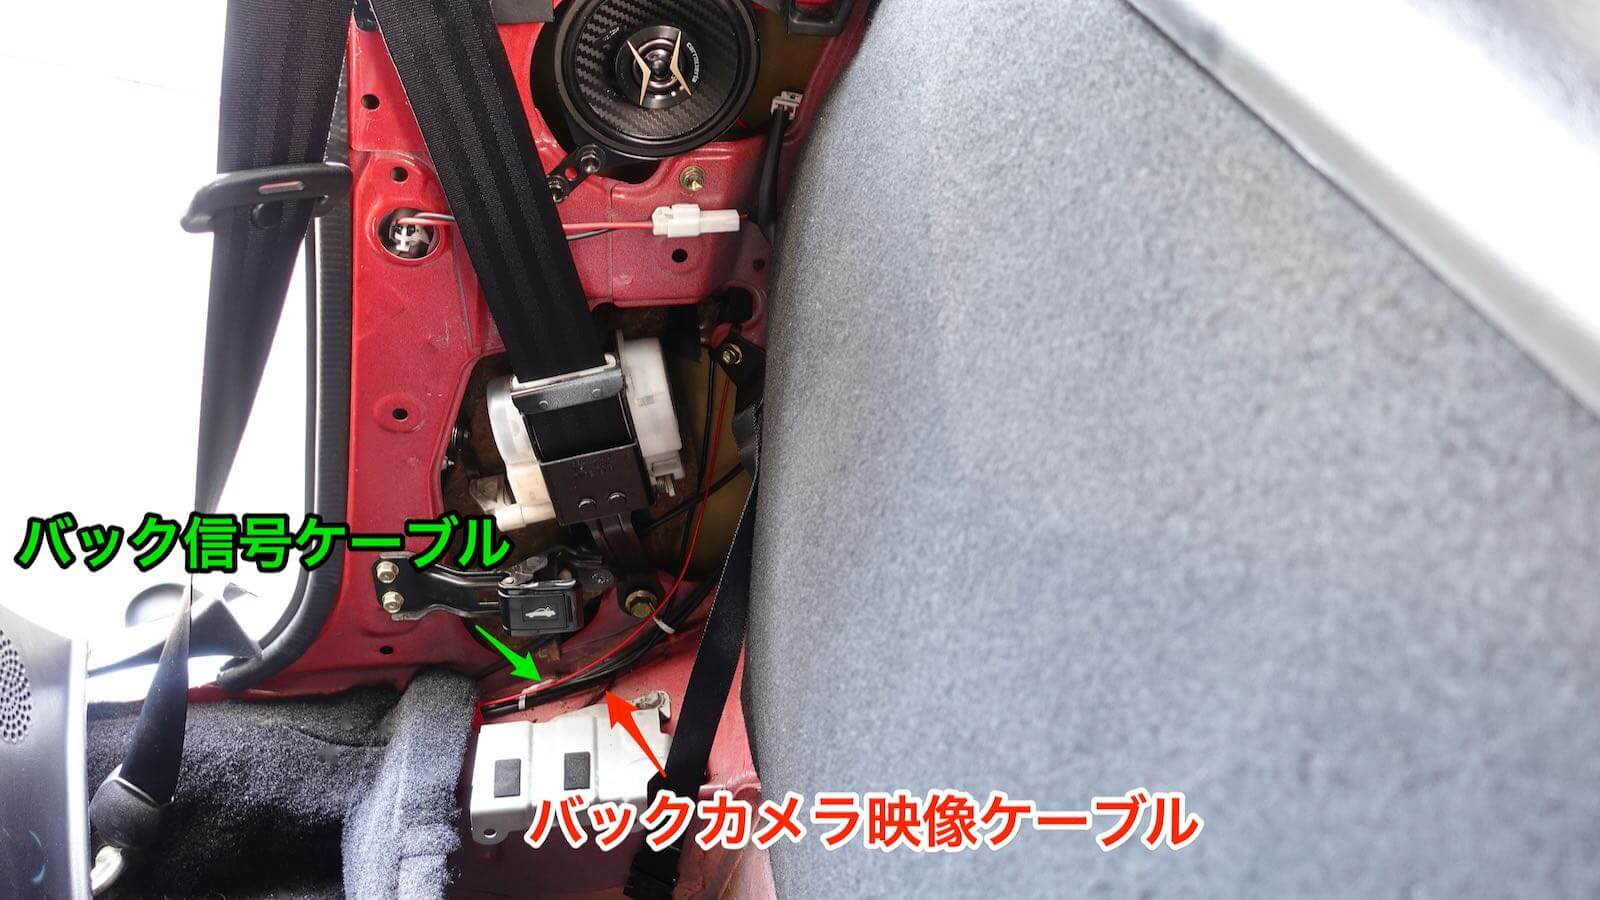 MR2 back camera video cable / back signal cable lead-in route